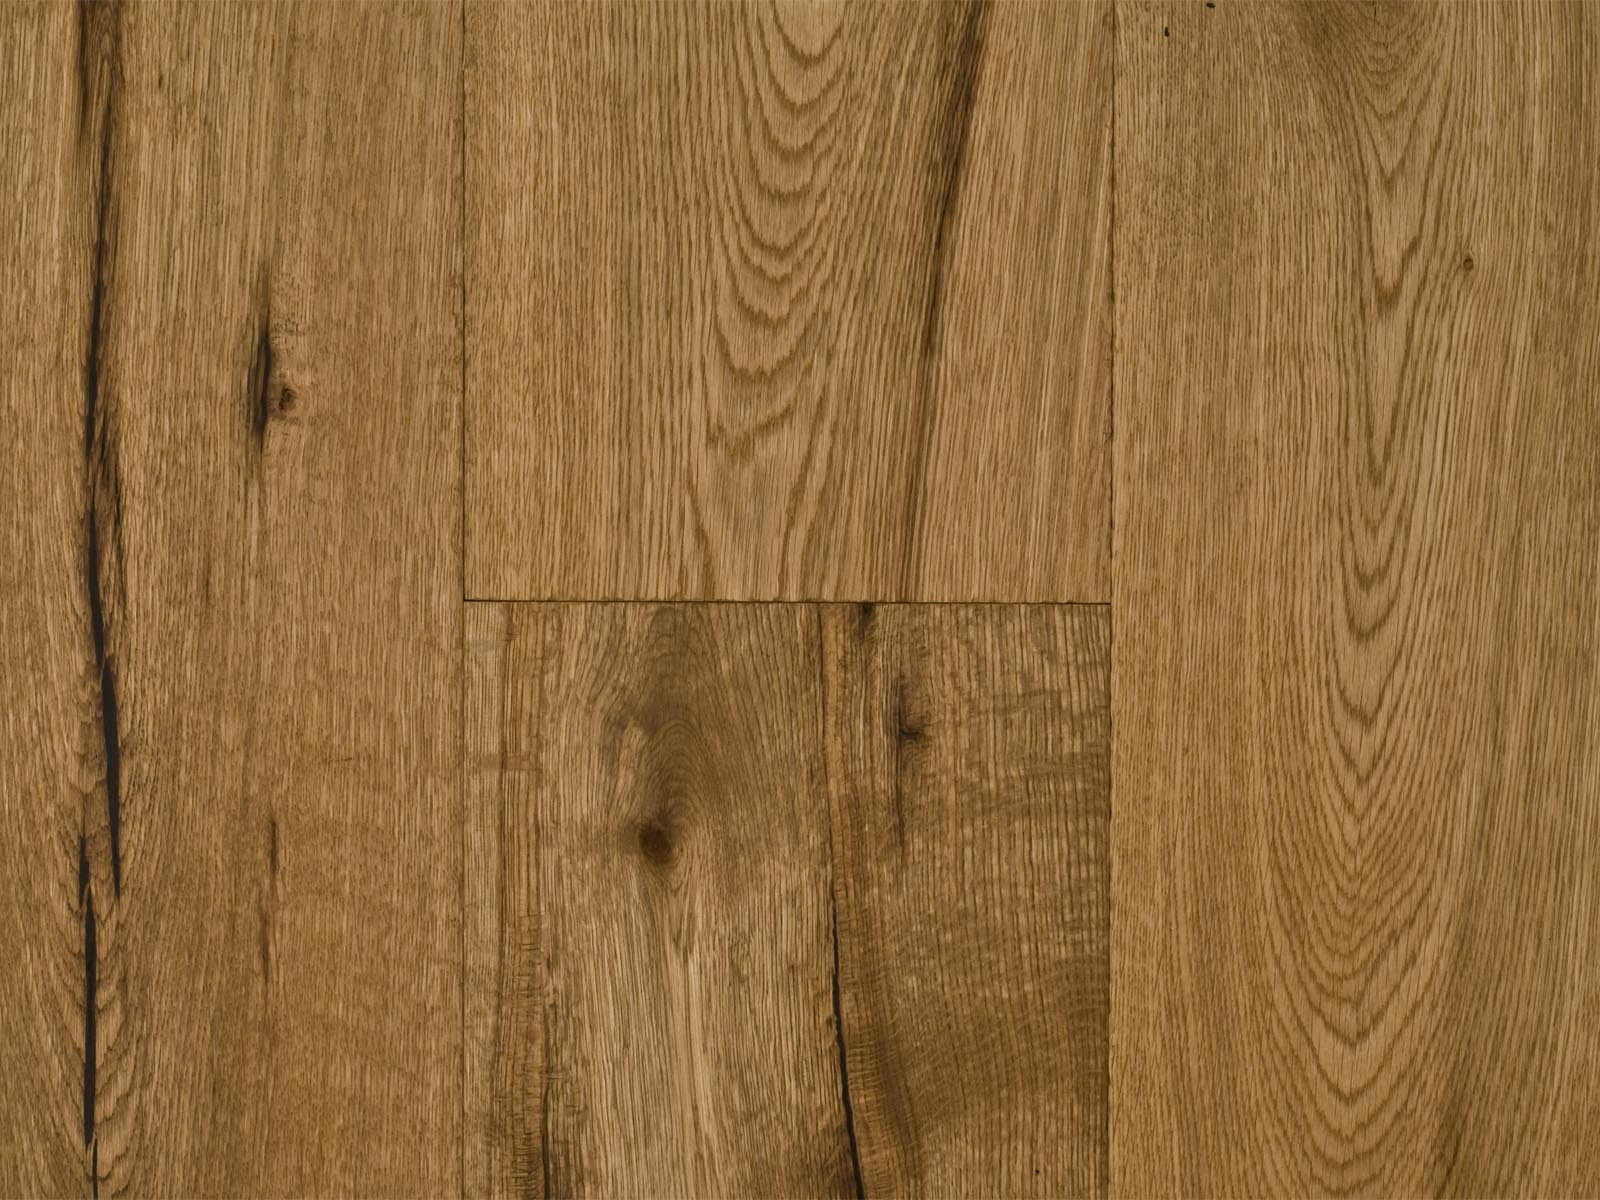 hallmark hardwood flooring prices of duchateau hardwood flooring houston tx discount engineered wood intended for the chateau collection duchateau hardwood floors